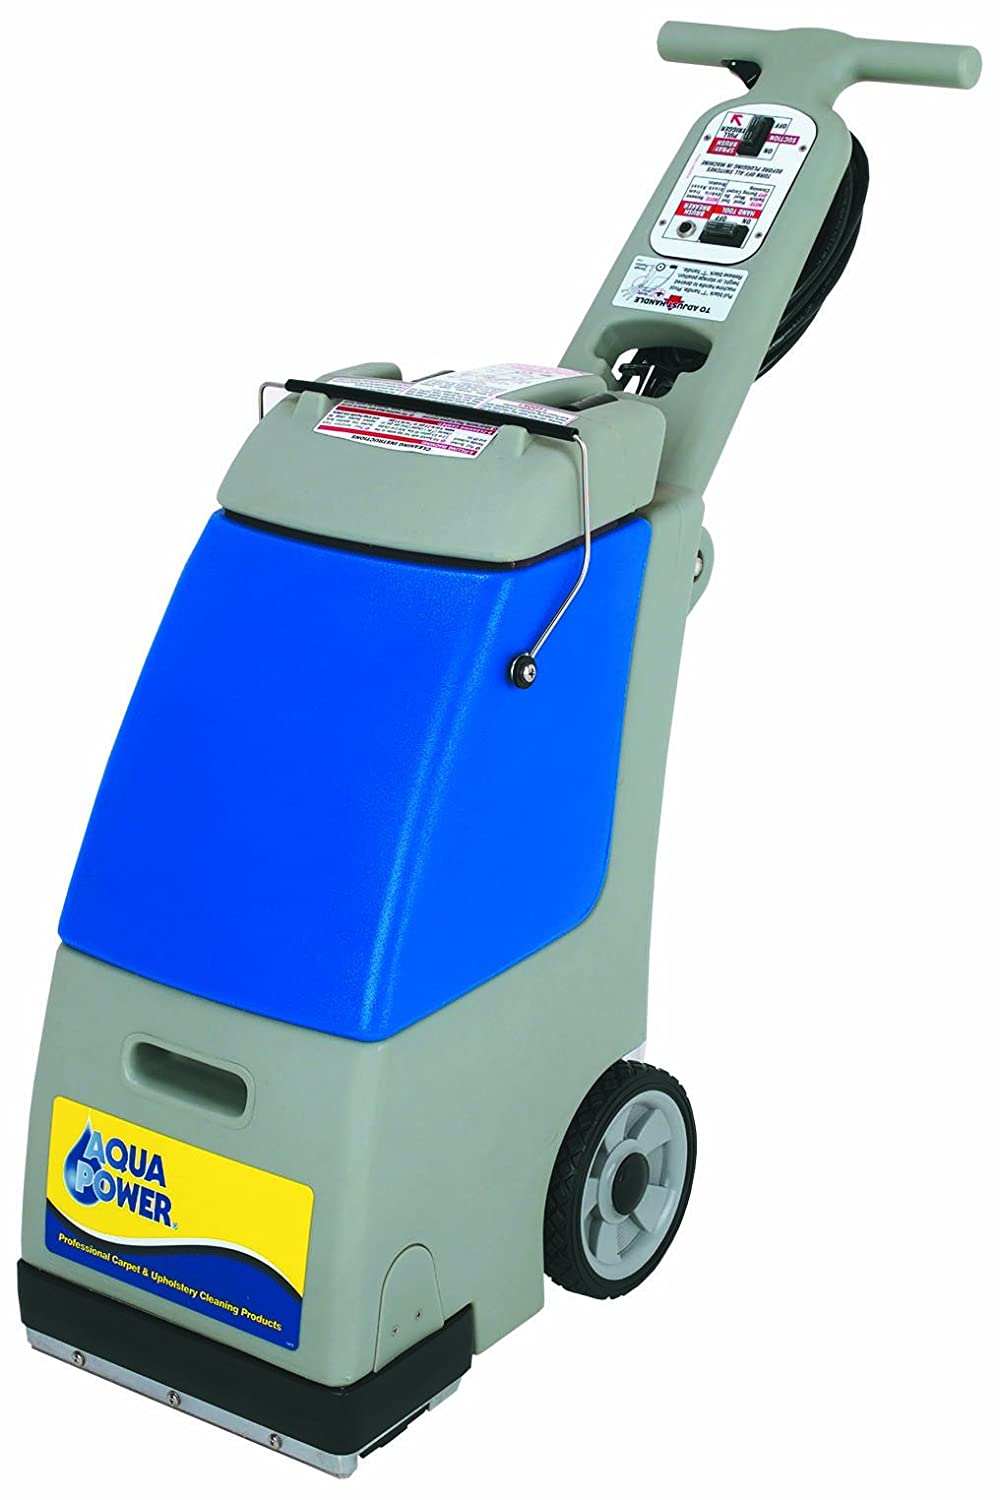 How To Operate A Rug Doctor Machine 7 Things To Do